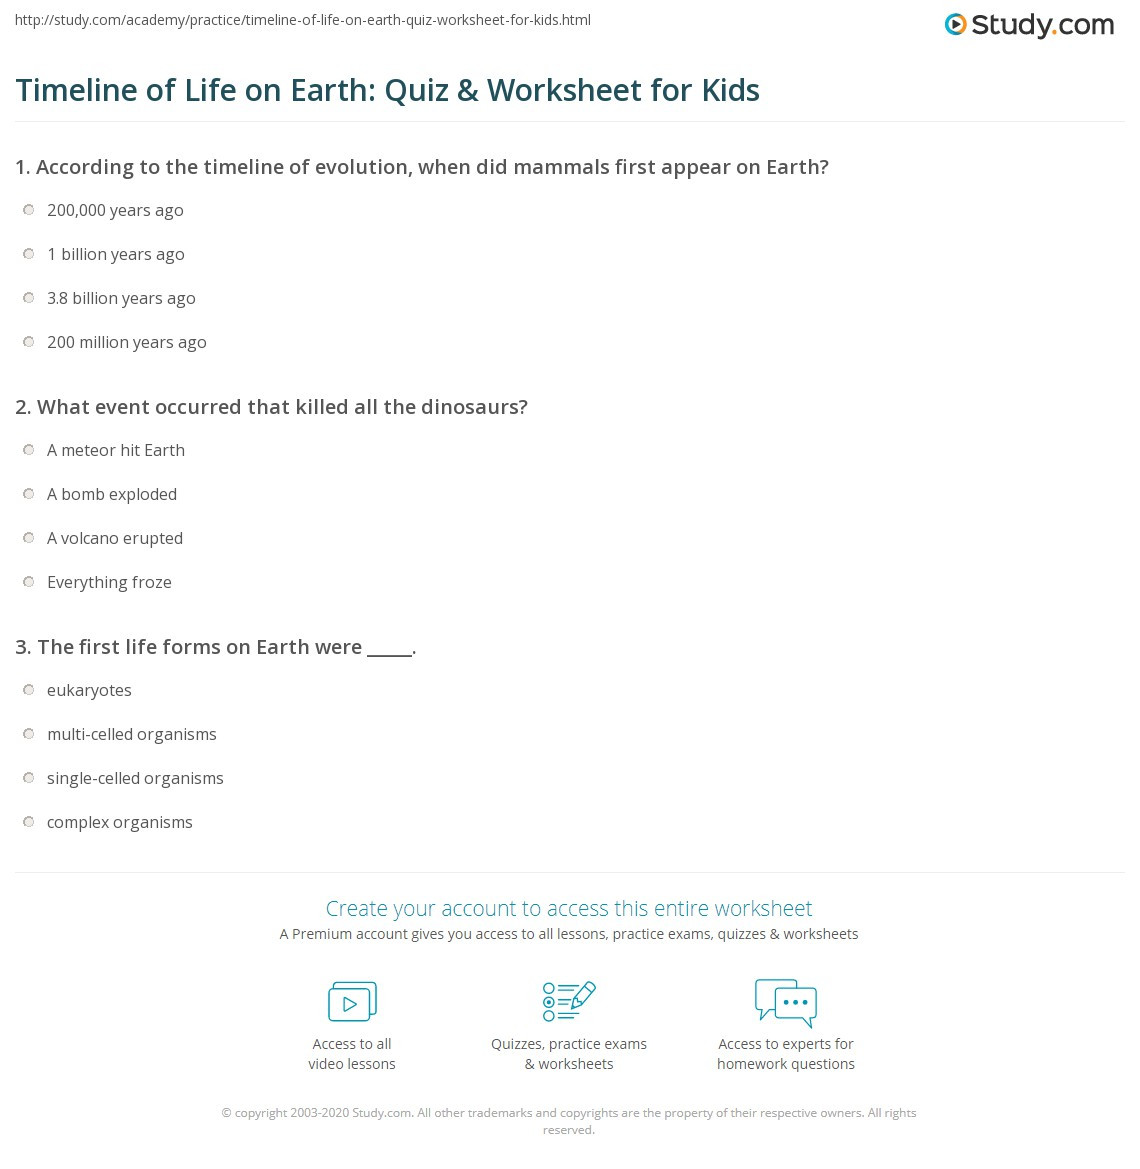 Timeline Worksheets for Middle School Timeline Of Life On Earth Quiz & Worksheet for Kids